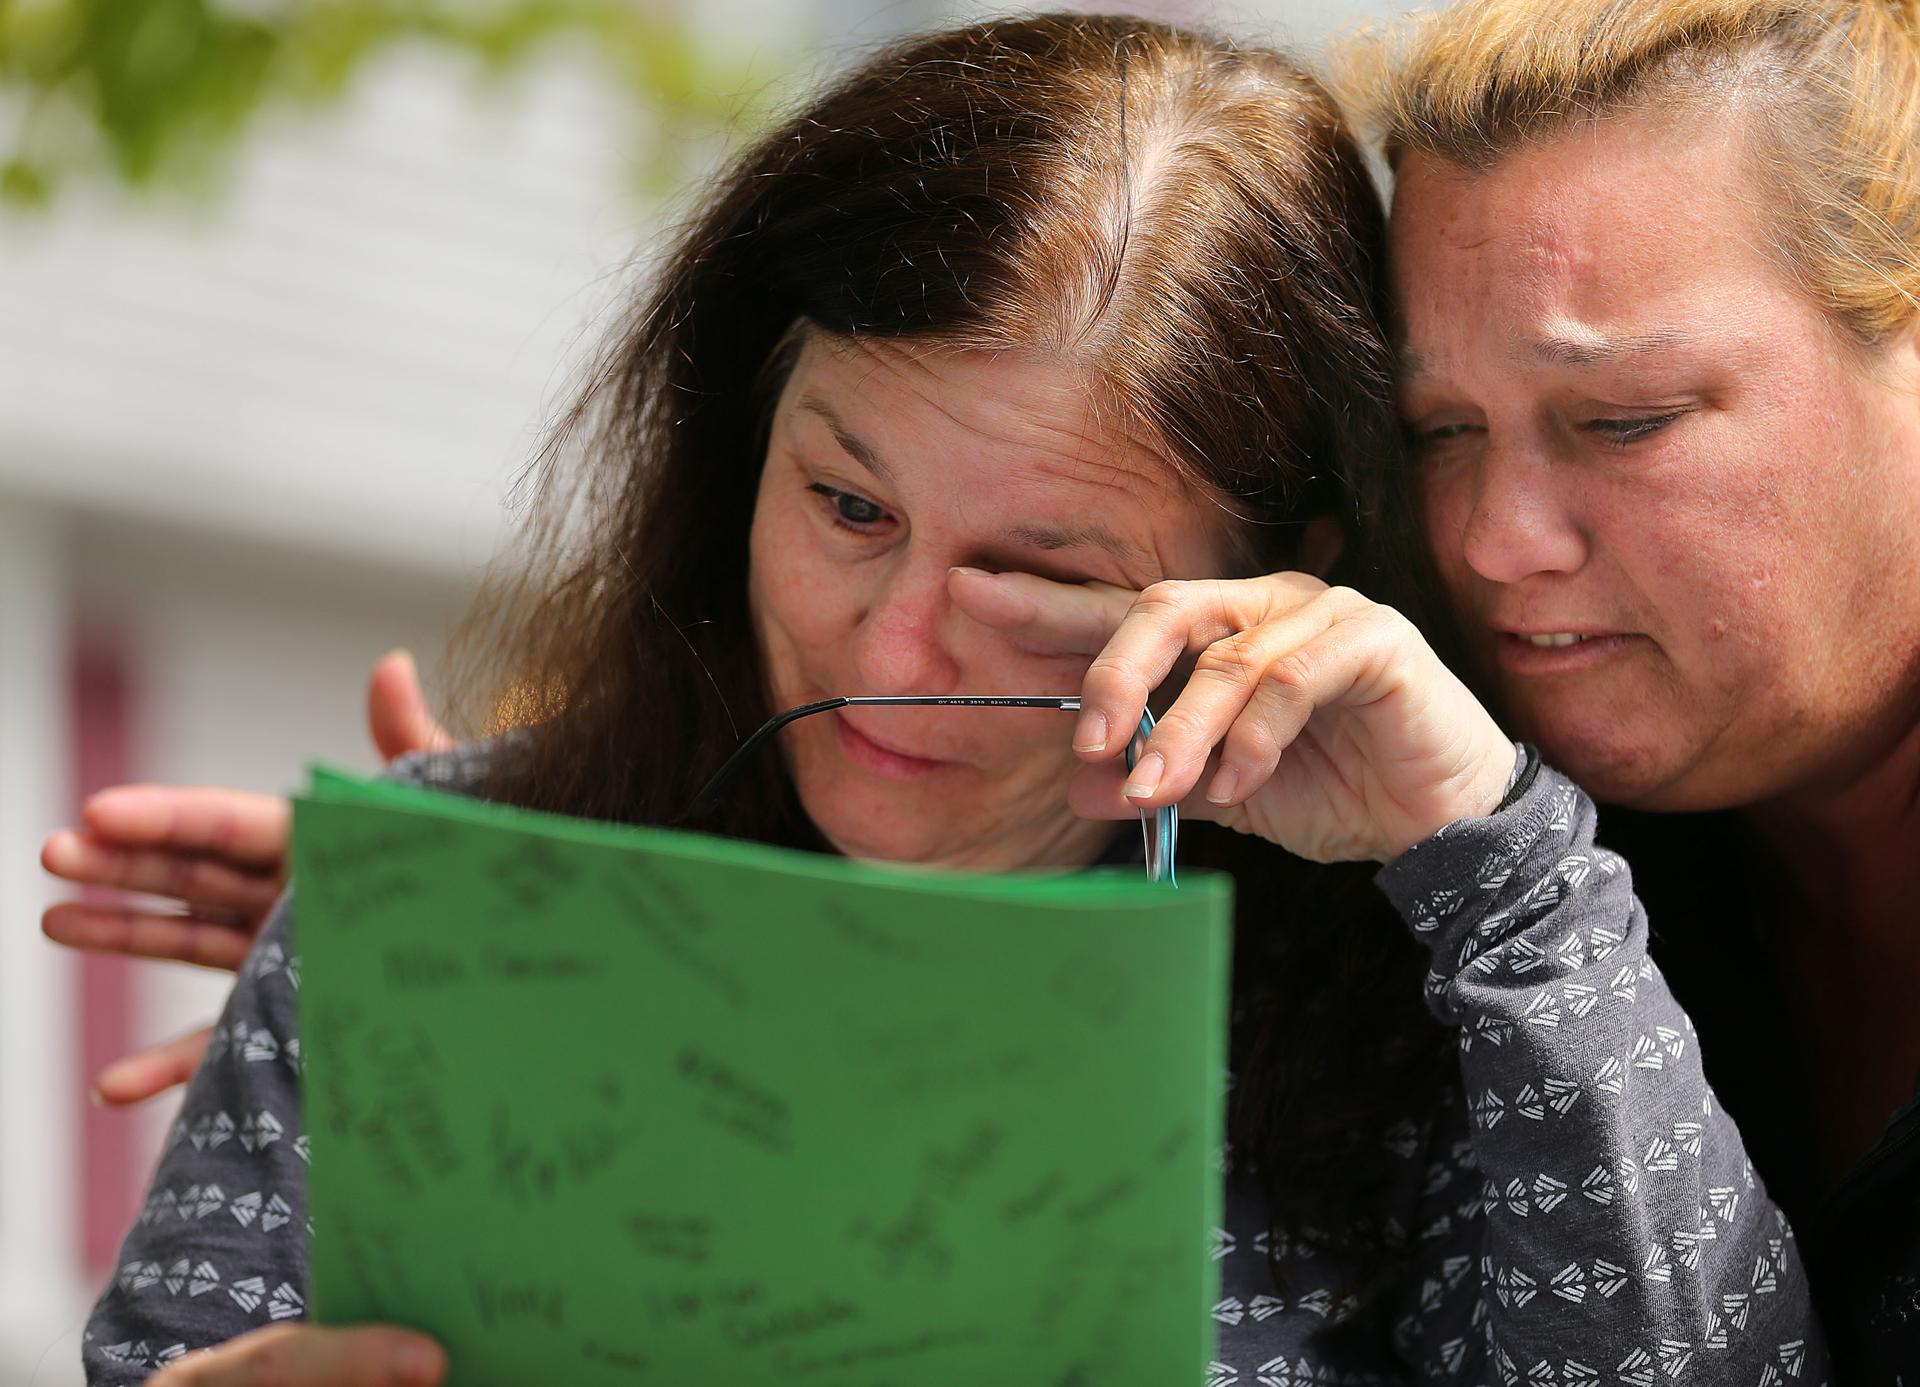 Jeanne Doyle (left) was comforted by a friend as she read a signed card from students at Rogers Middle School.